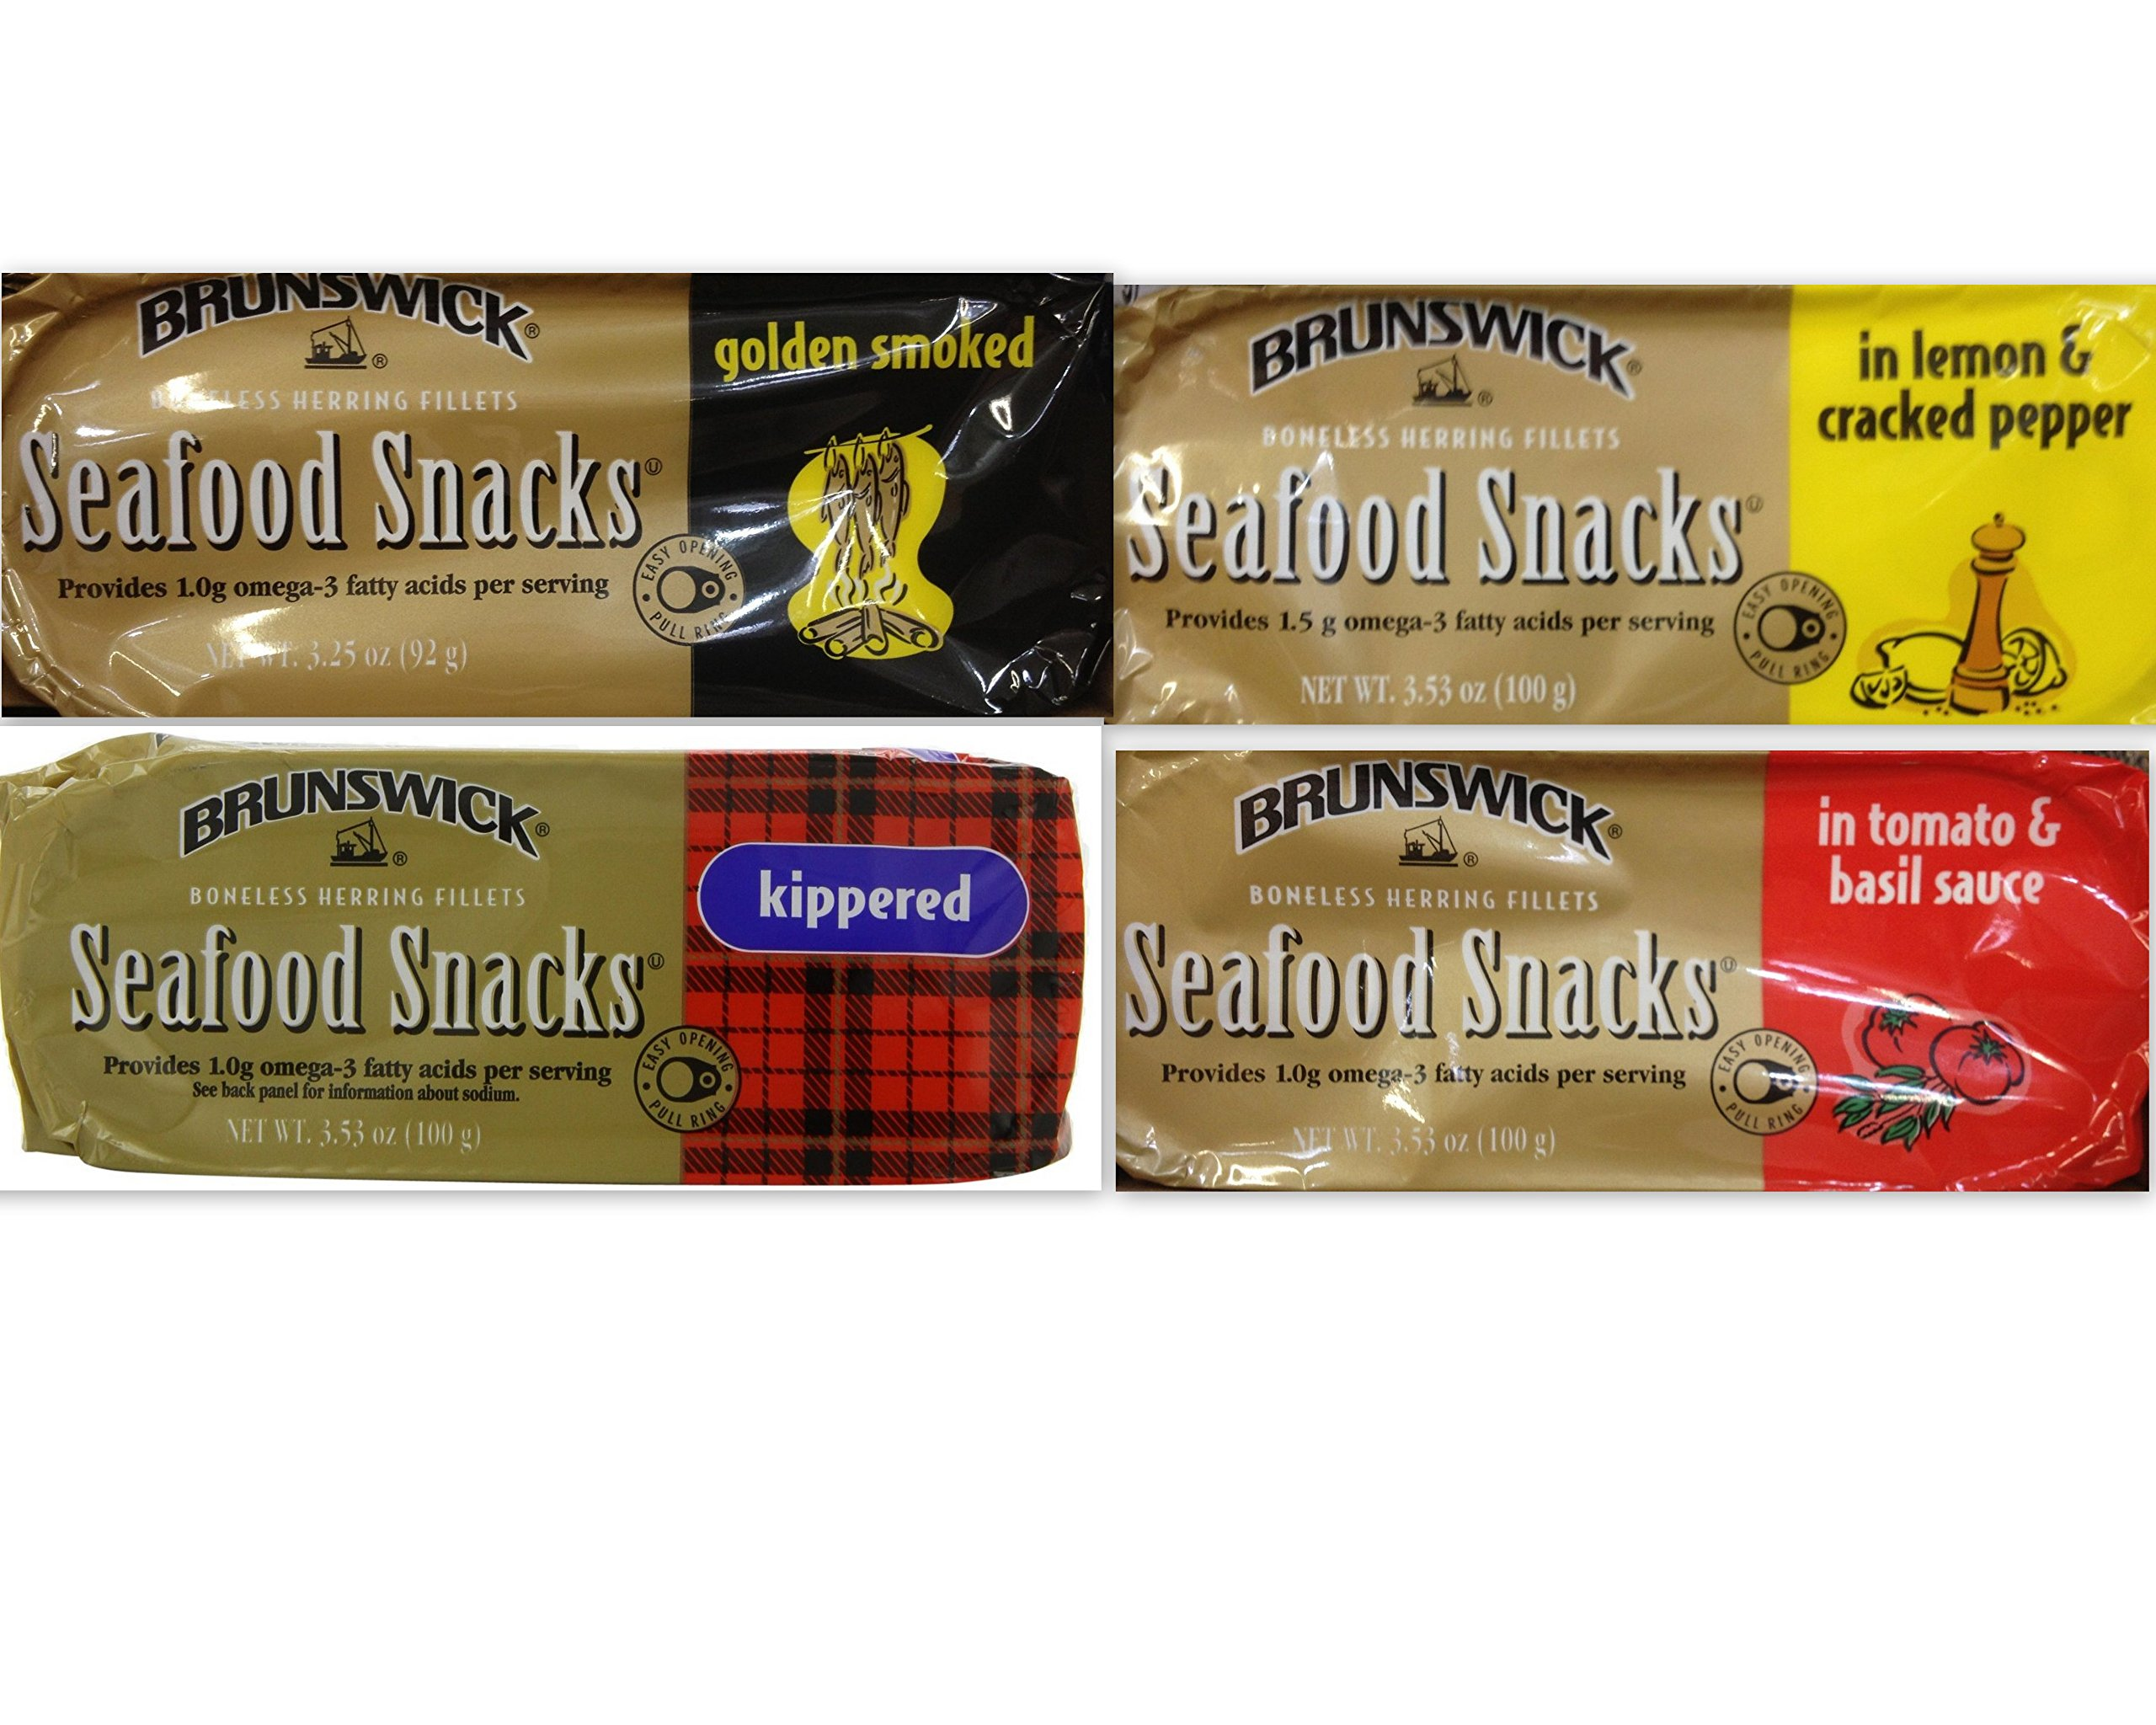 Brunswick Seafood Snacks Variety Bundle, 3.53 oz (Pack of 4) includes 1-Pack Kippered Fillets + 1-Pack Fillets in Tomato & Basil Sauce + 1-Pack Golden Smoked Fillets + 1-Pack Fillets in Lemon & Cracked Pepper